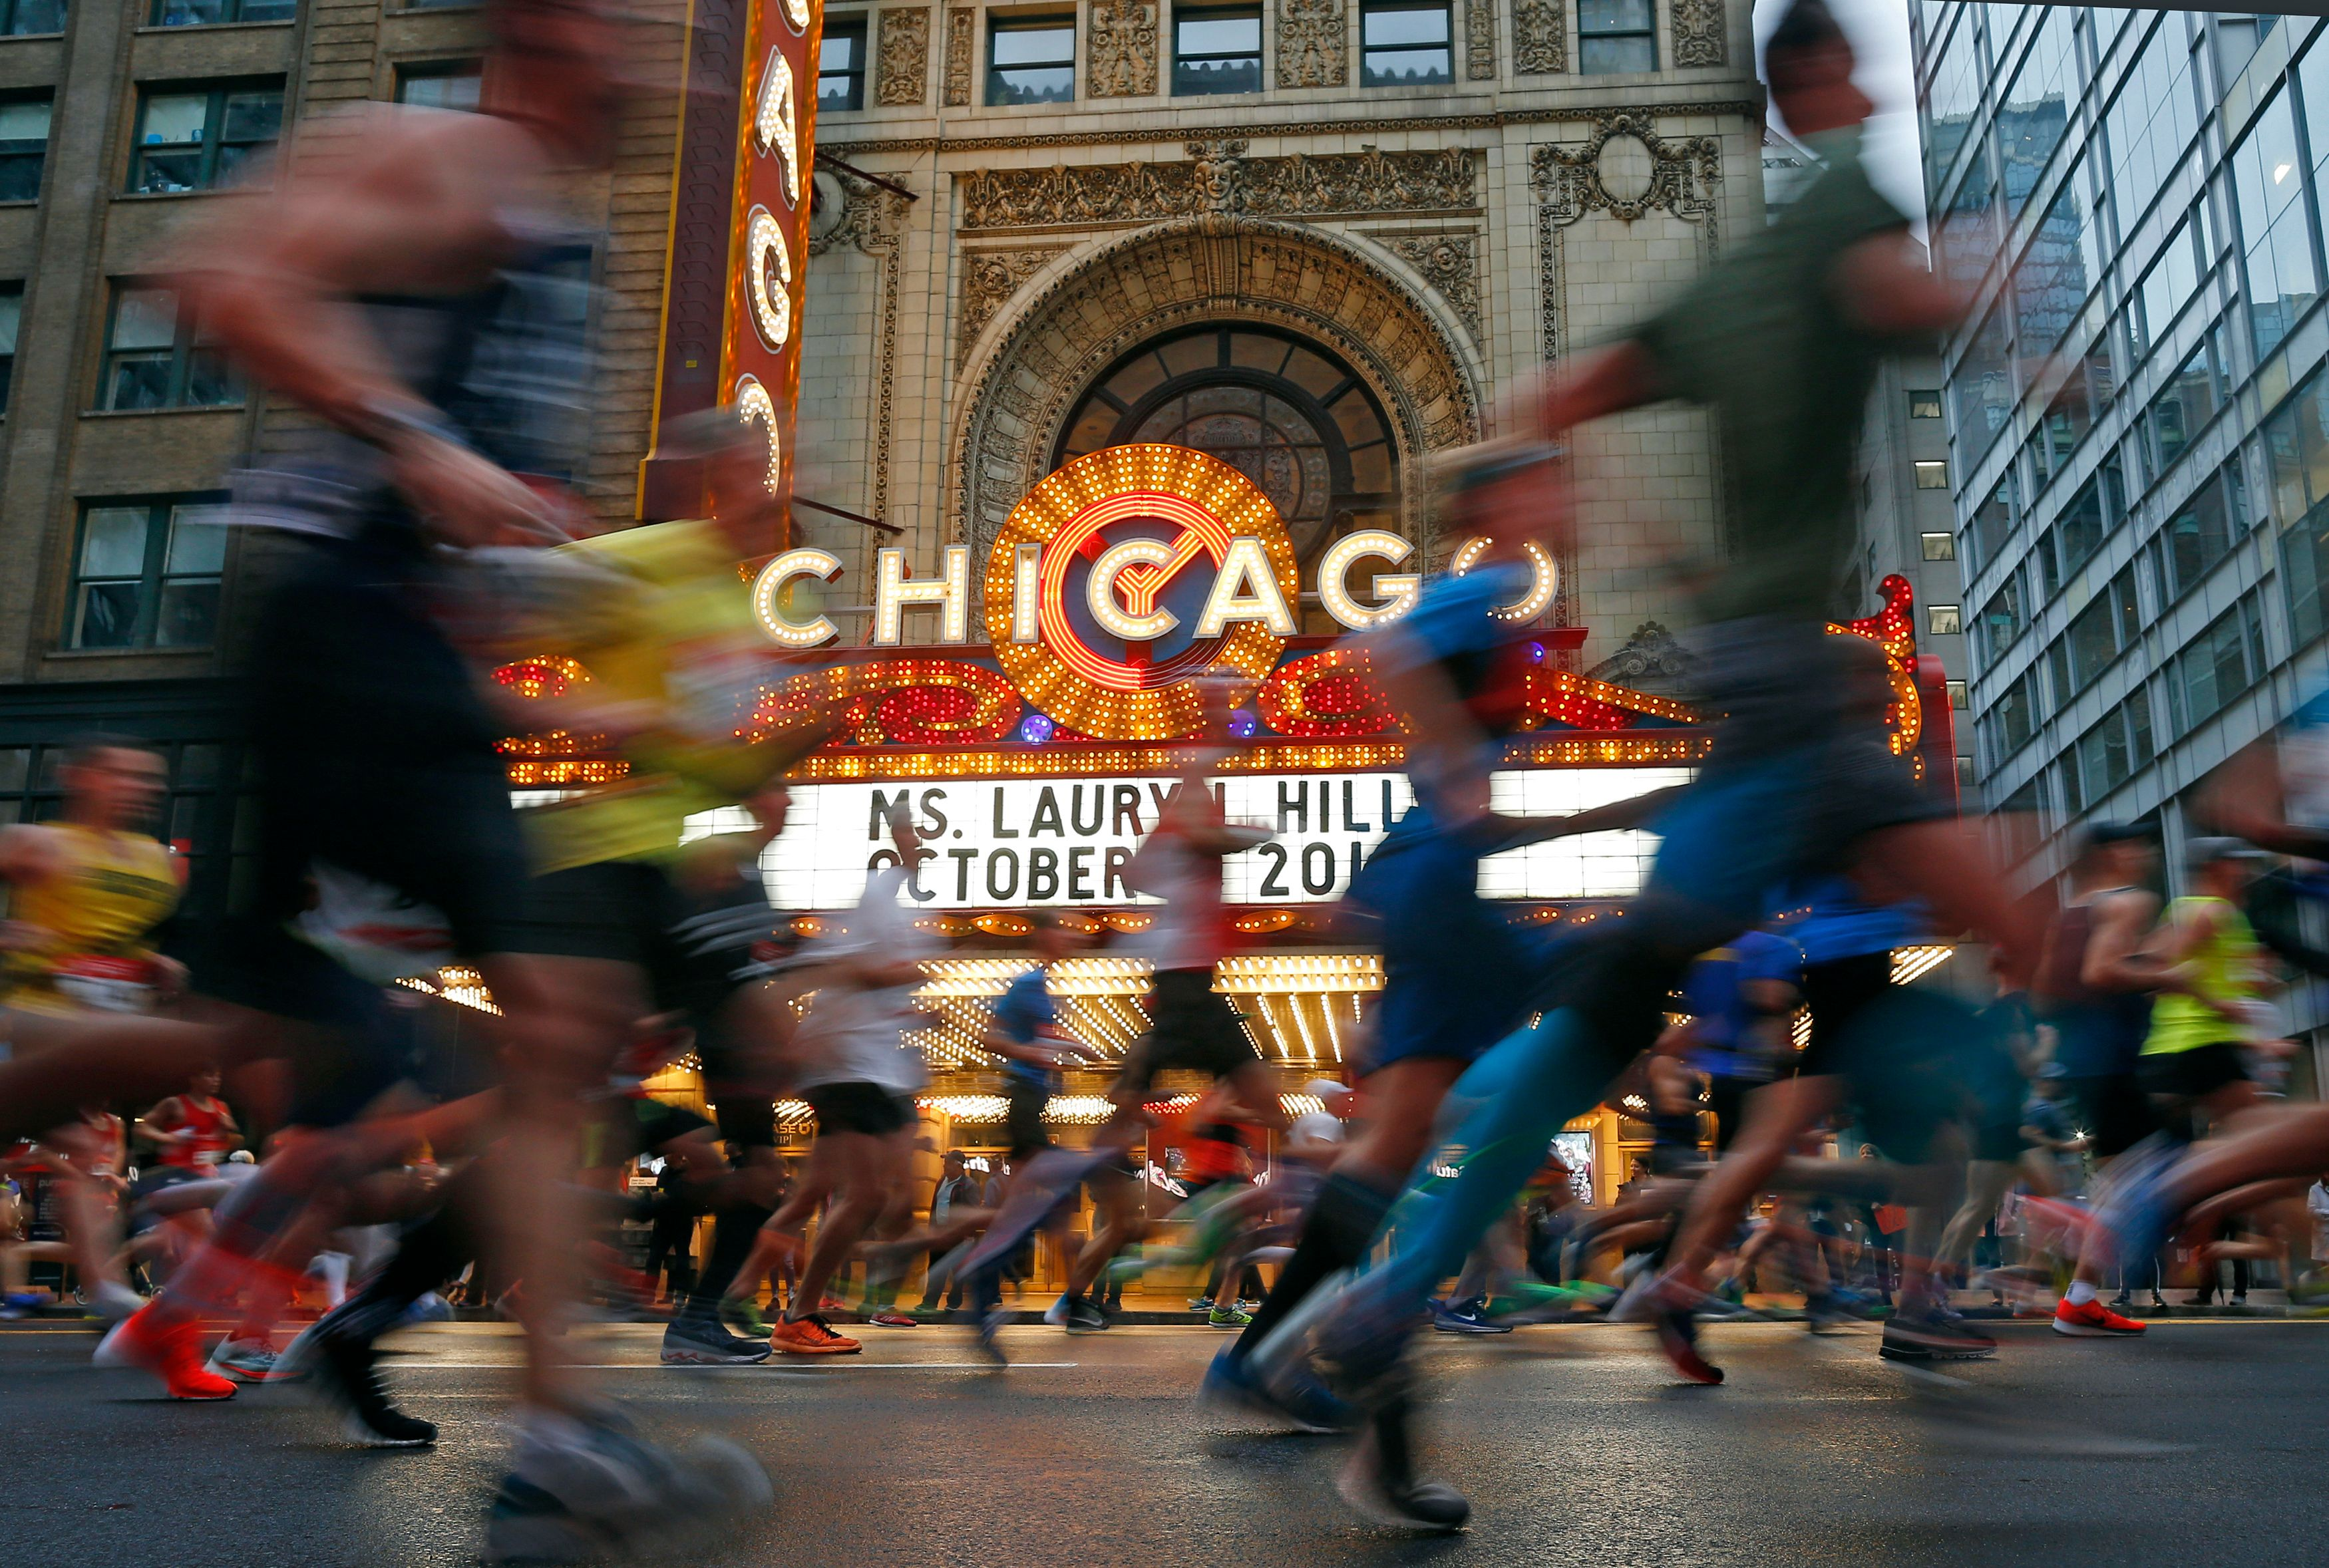 Groups of runners jogging in the Chicago Marathon pass the marquee of the Chicago Theatre on State Street.